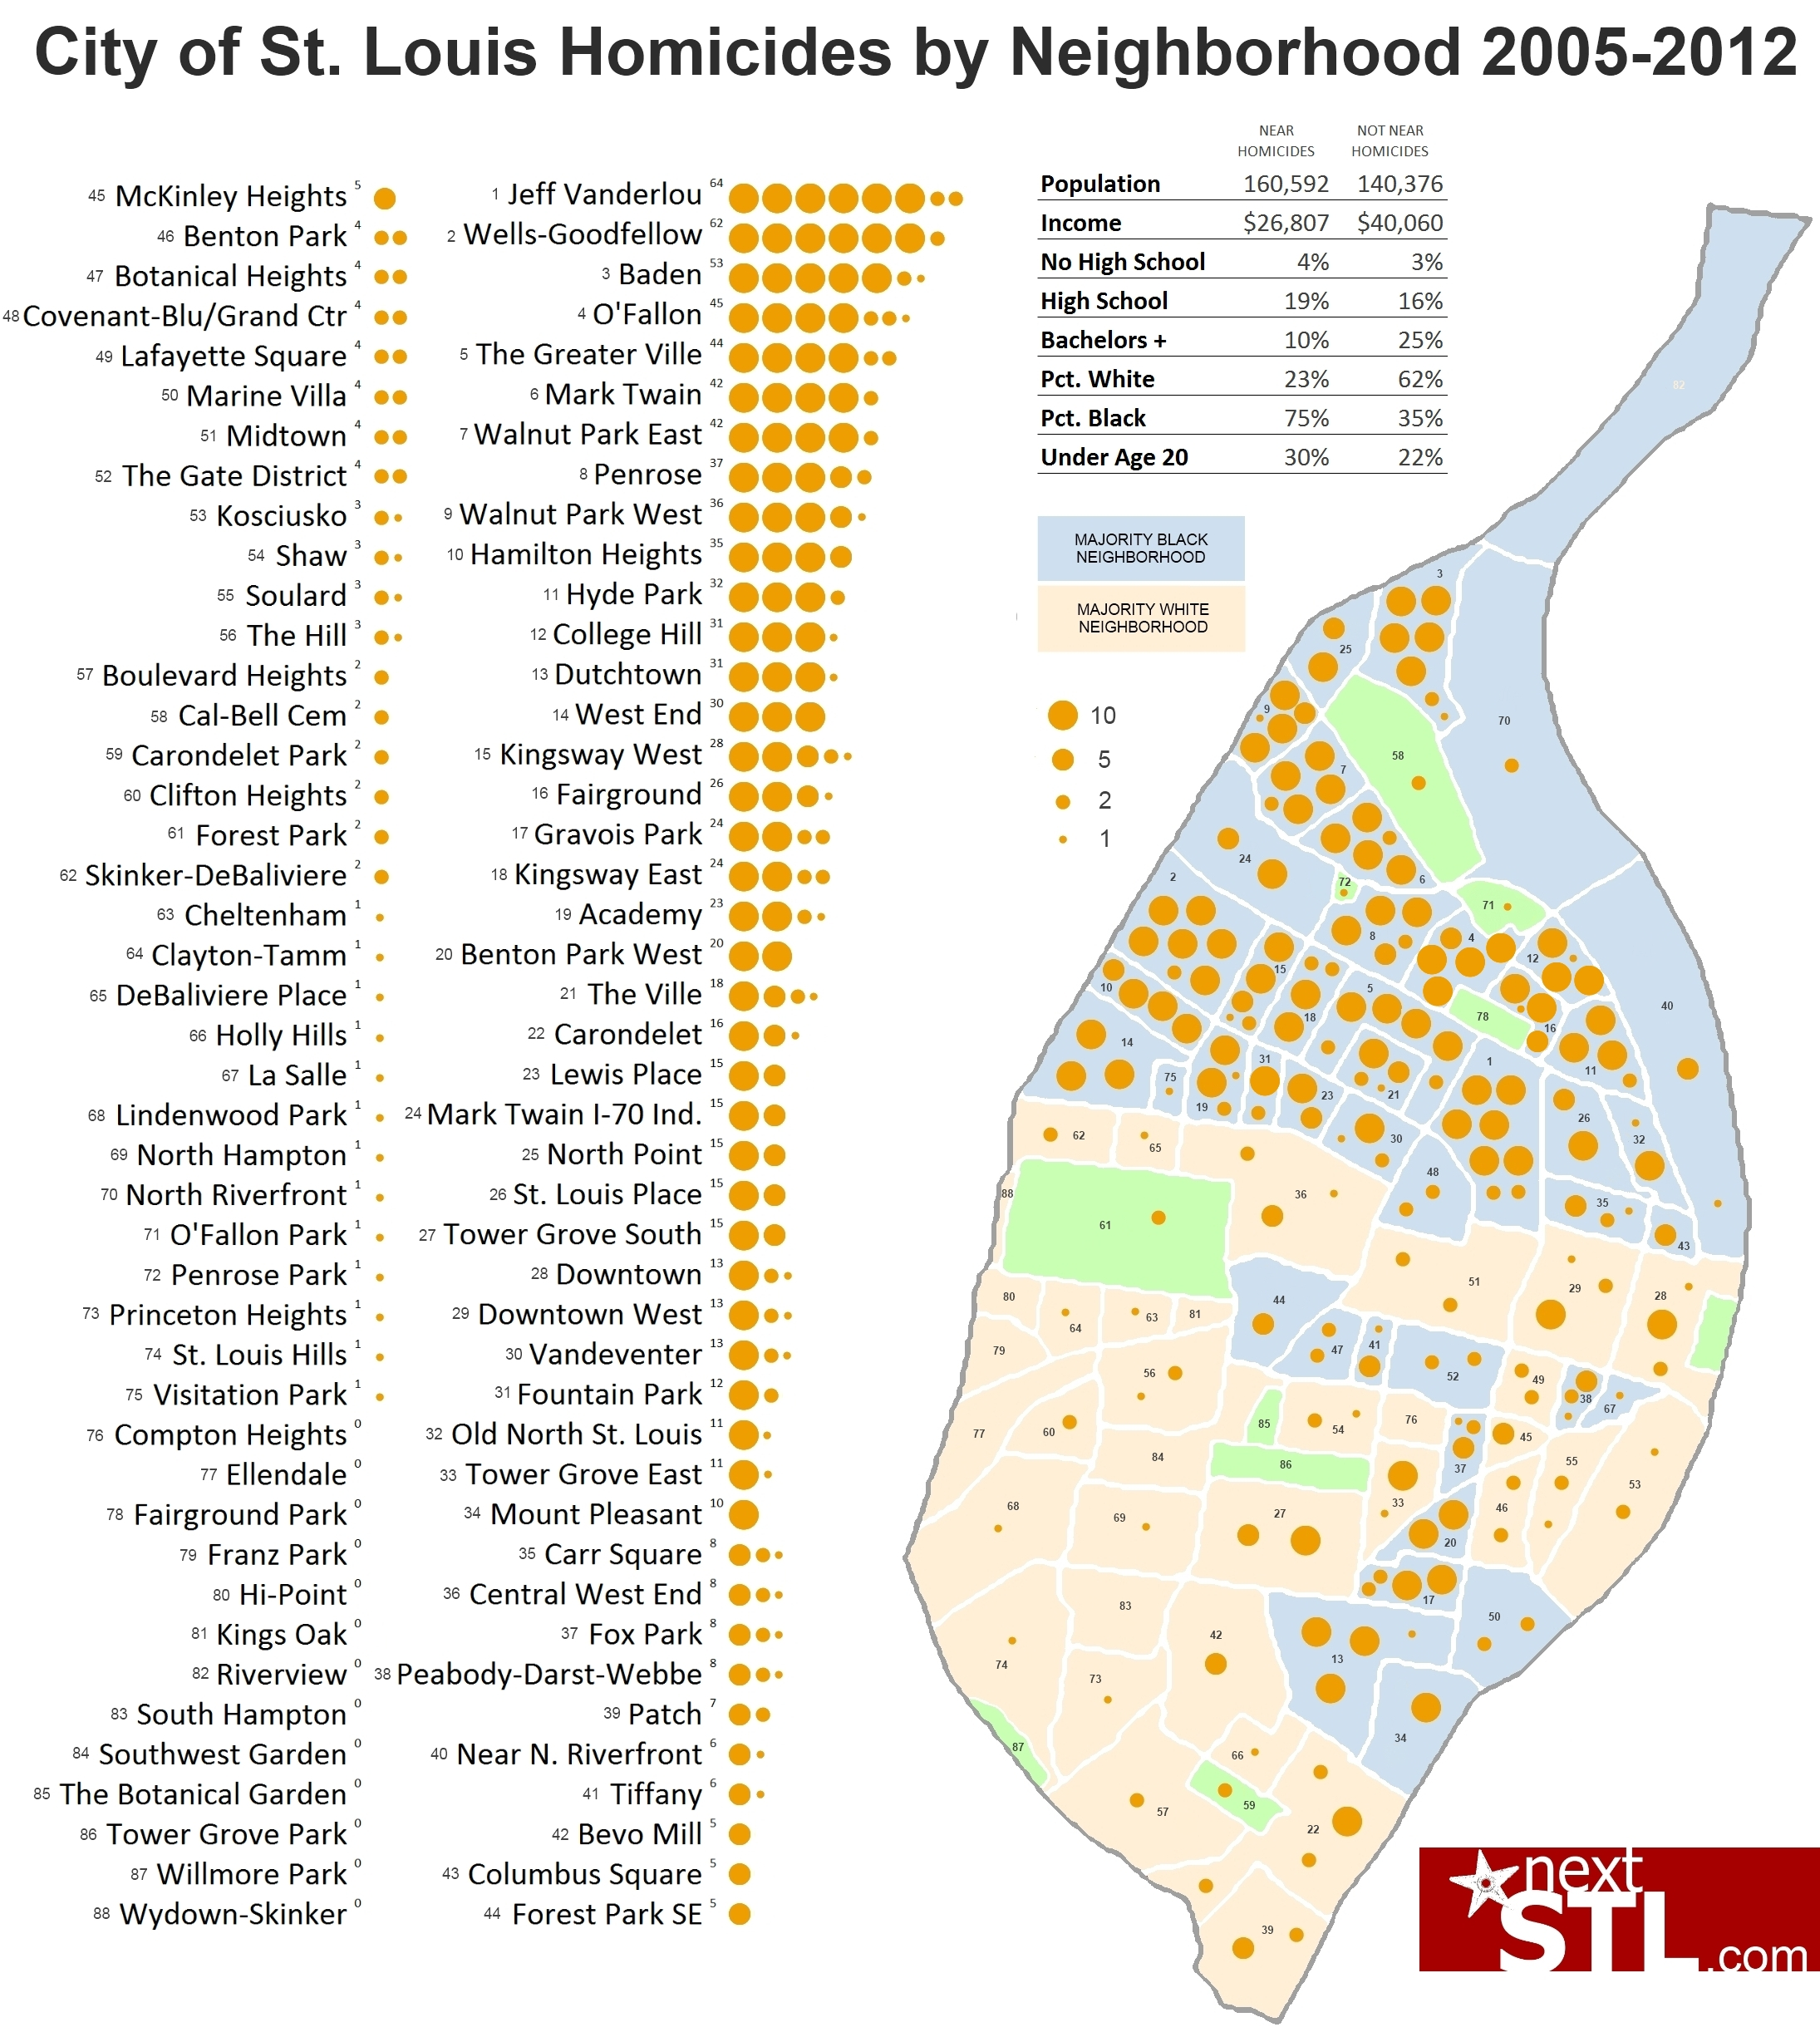 City of St. Louis Homicides by Neighborhood 2005-2012